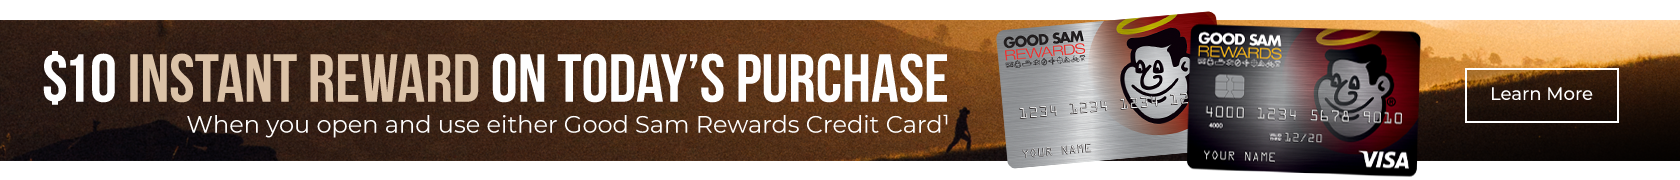 $10 instant reward on today's purchase when you open and use either Good Sam Rewards Credit Card